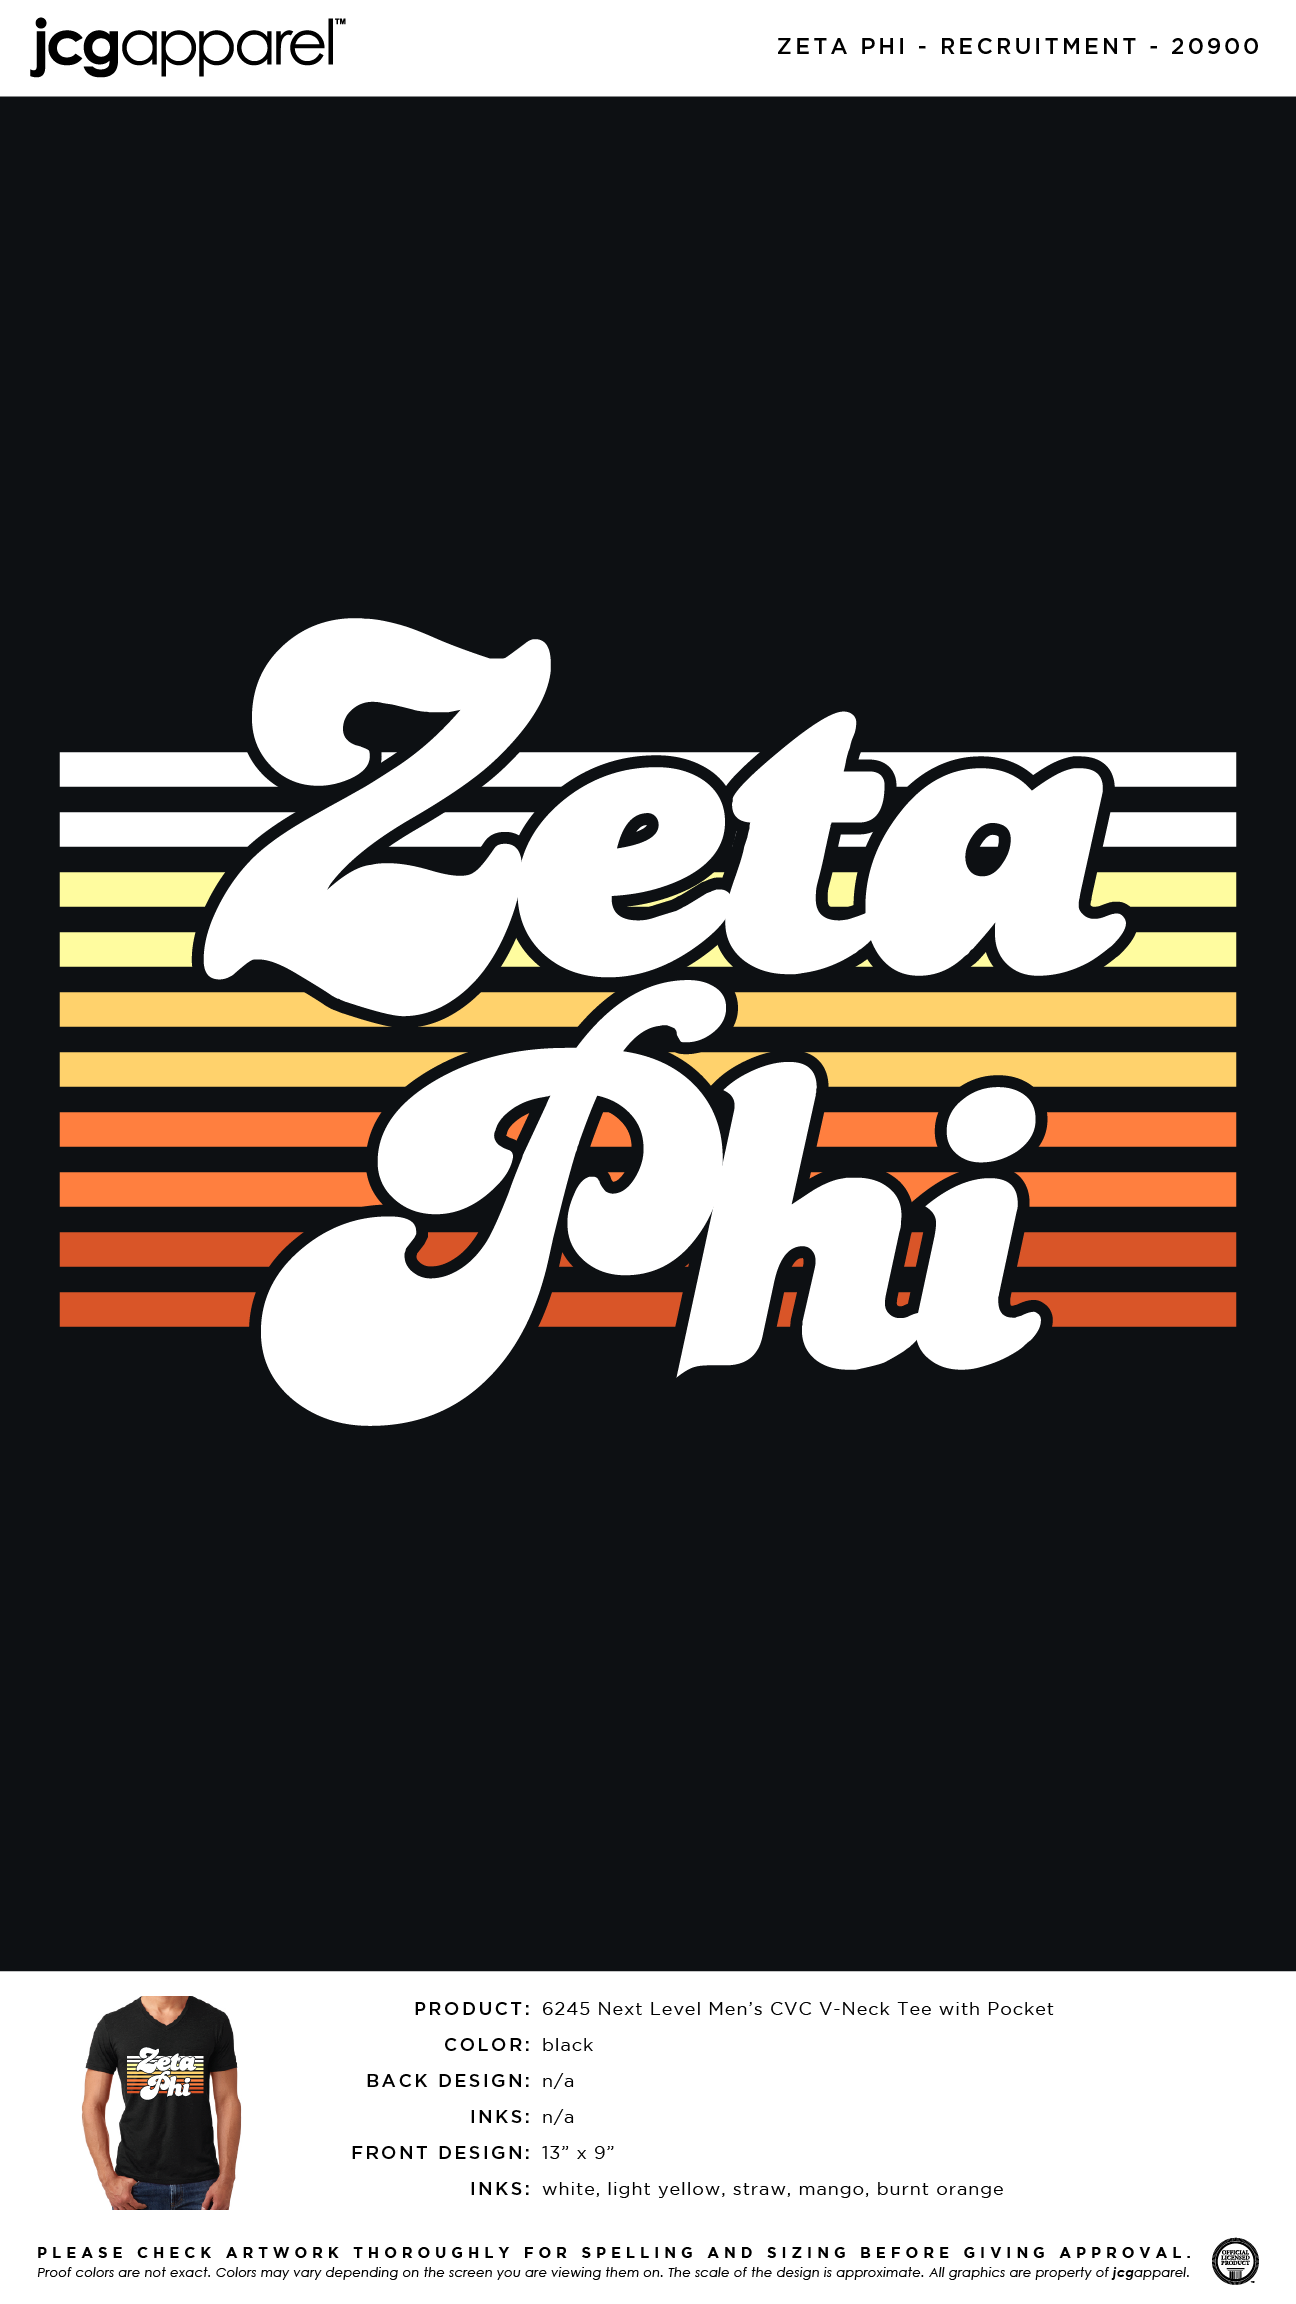 Greek Letter Before Kappa.Zeta Phi Recruitment Shirt Zetaphi Zp Recruitment Rush